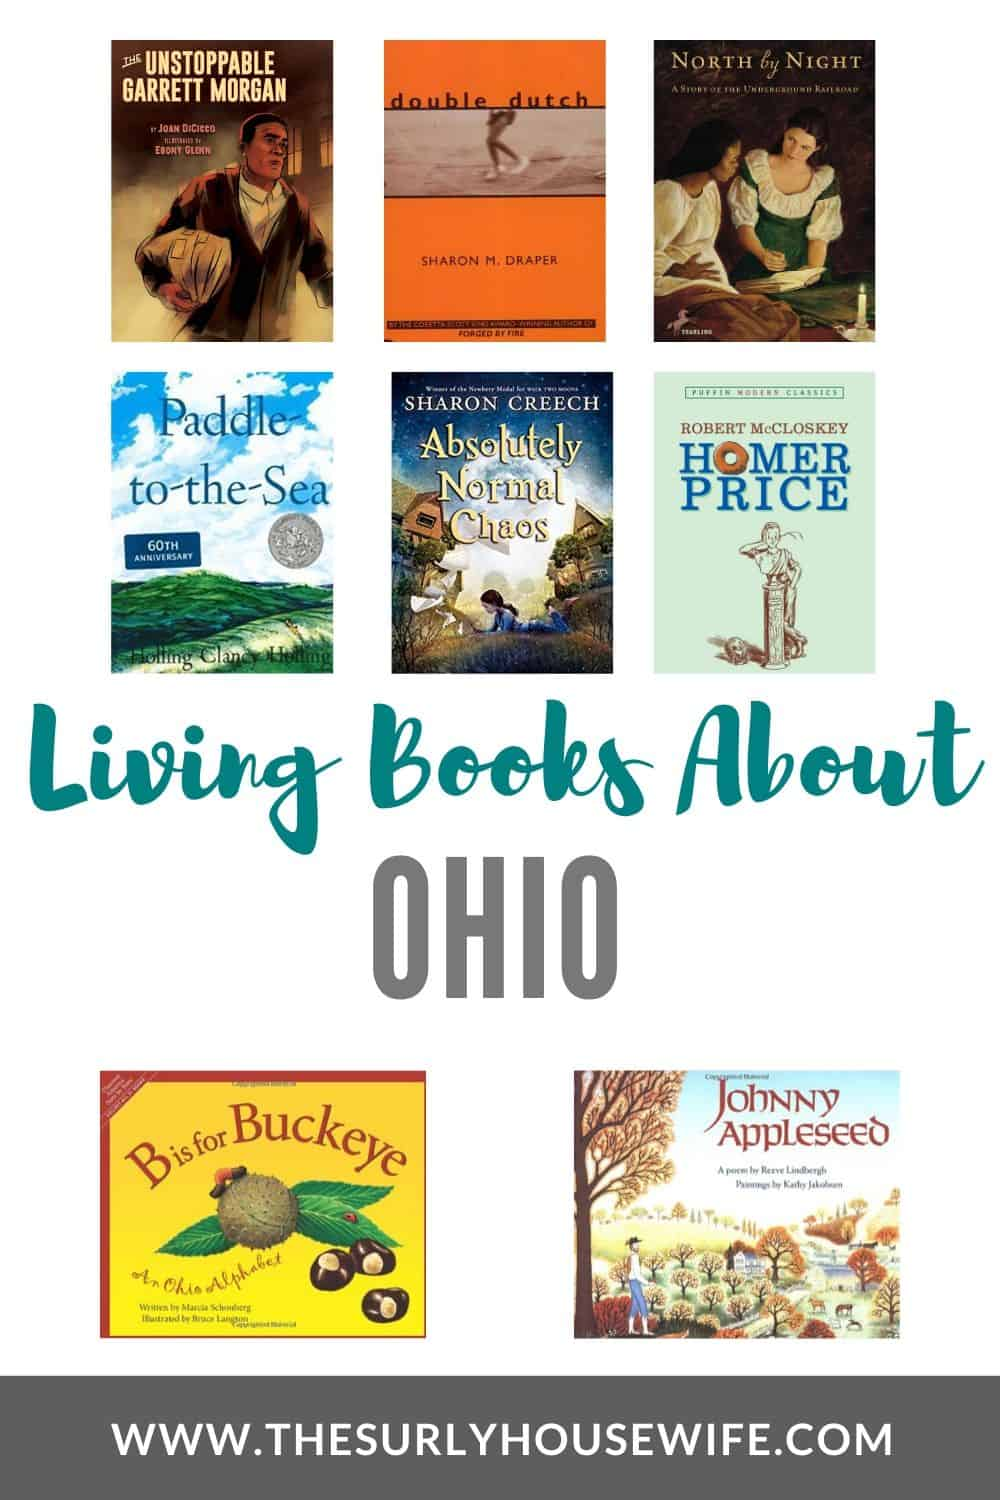 Need children's books about Ohio? This book list includes picture books about Ohio as well as chapter books set in Ohio, perfect for an Ohio unit study!